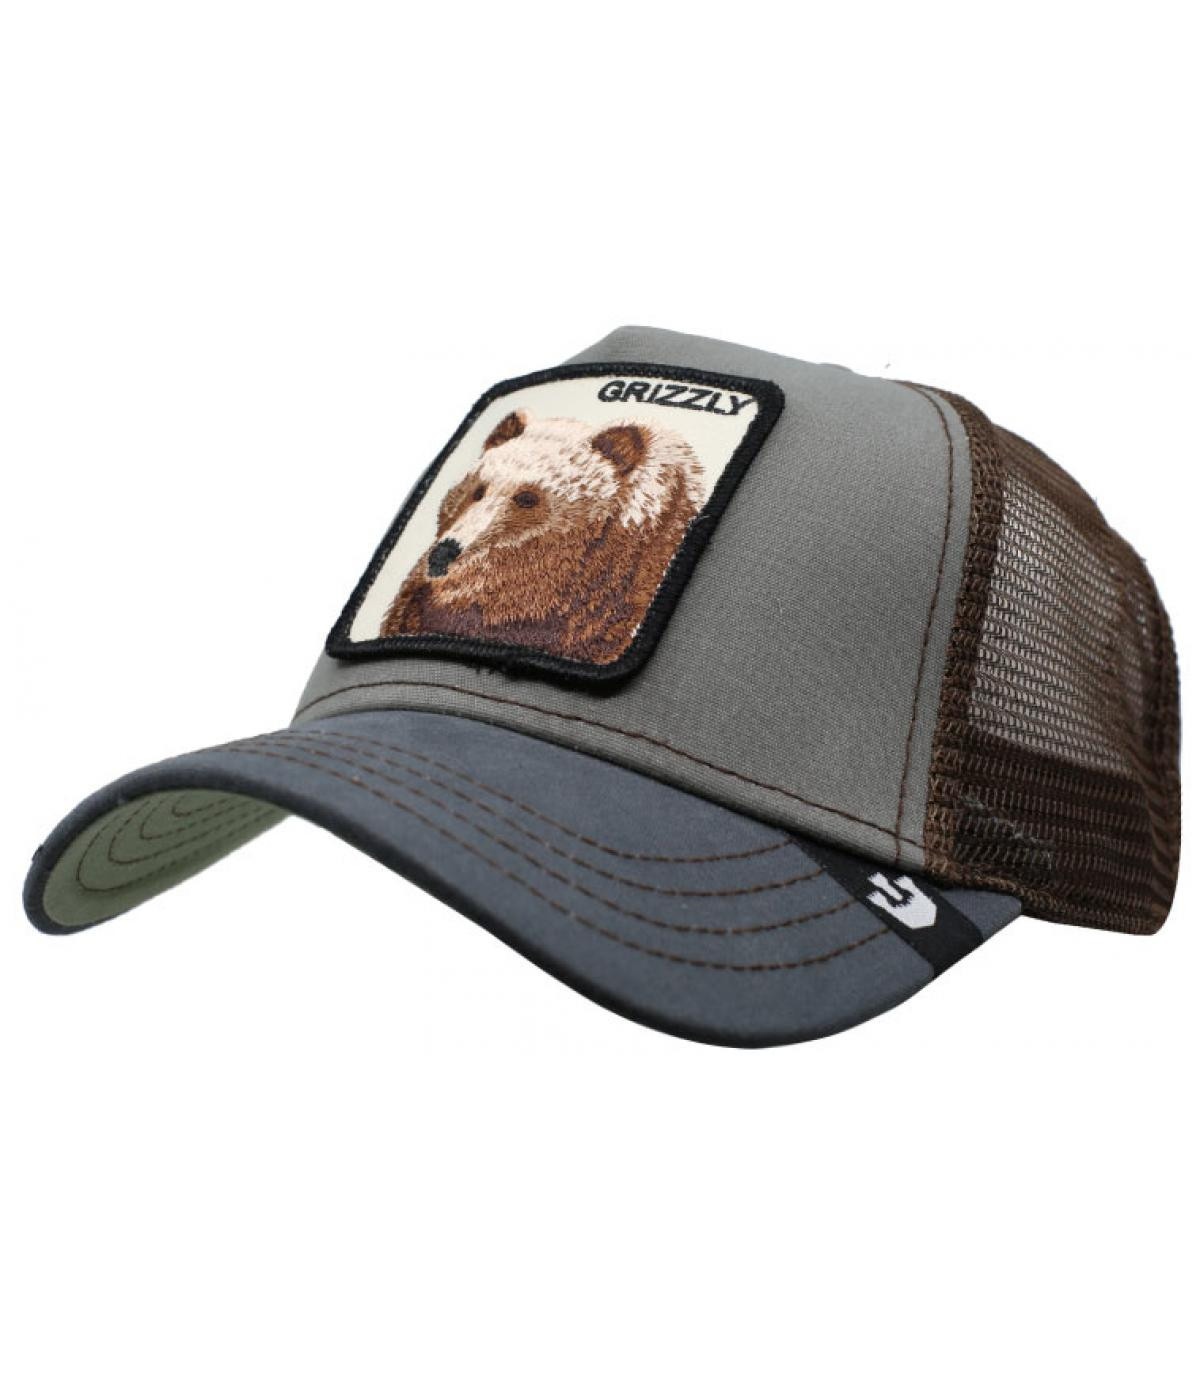 763c53068c9 green Grizzly trucker - Trucker Grizzly olive by Goorin. Headict